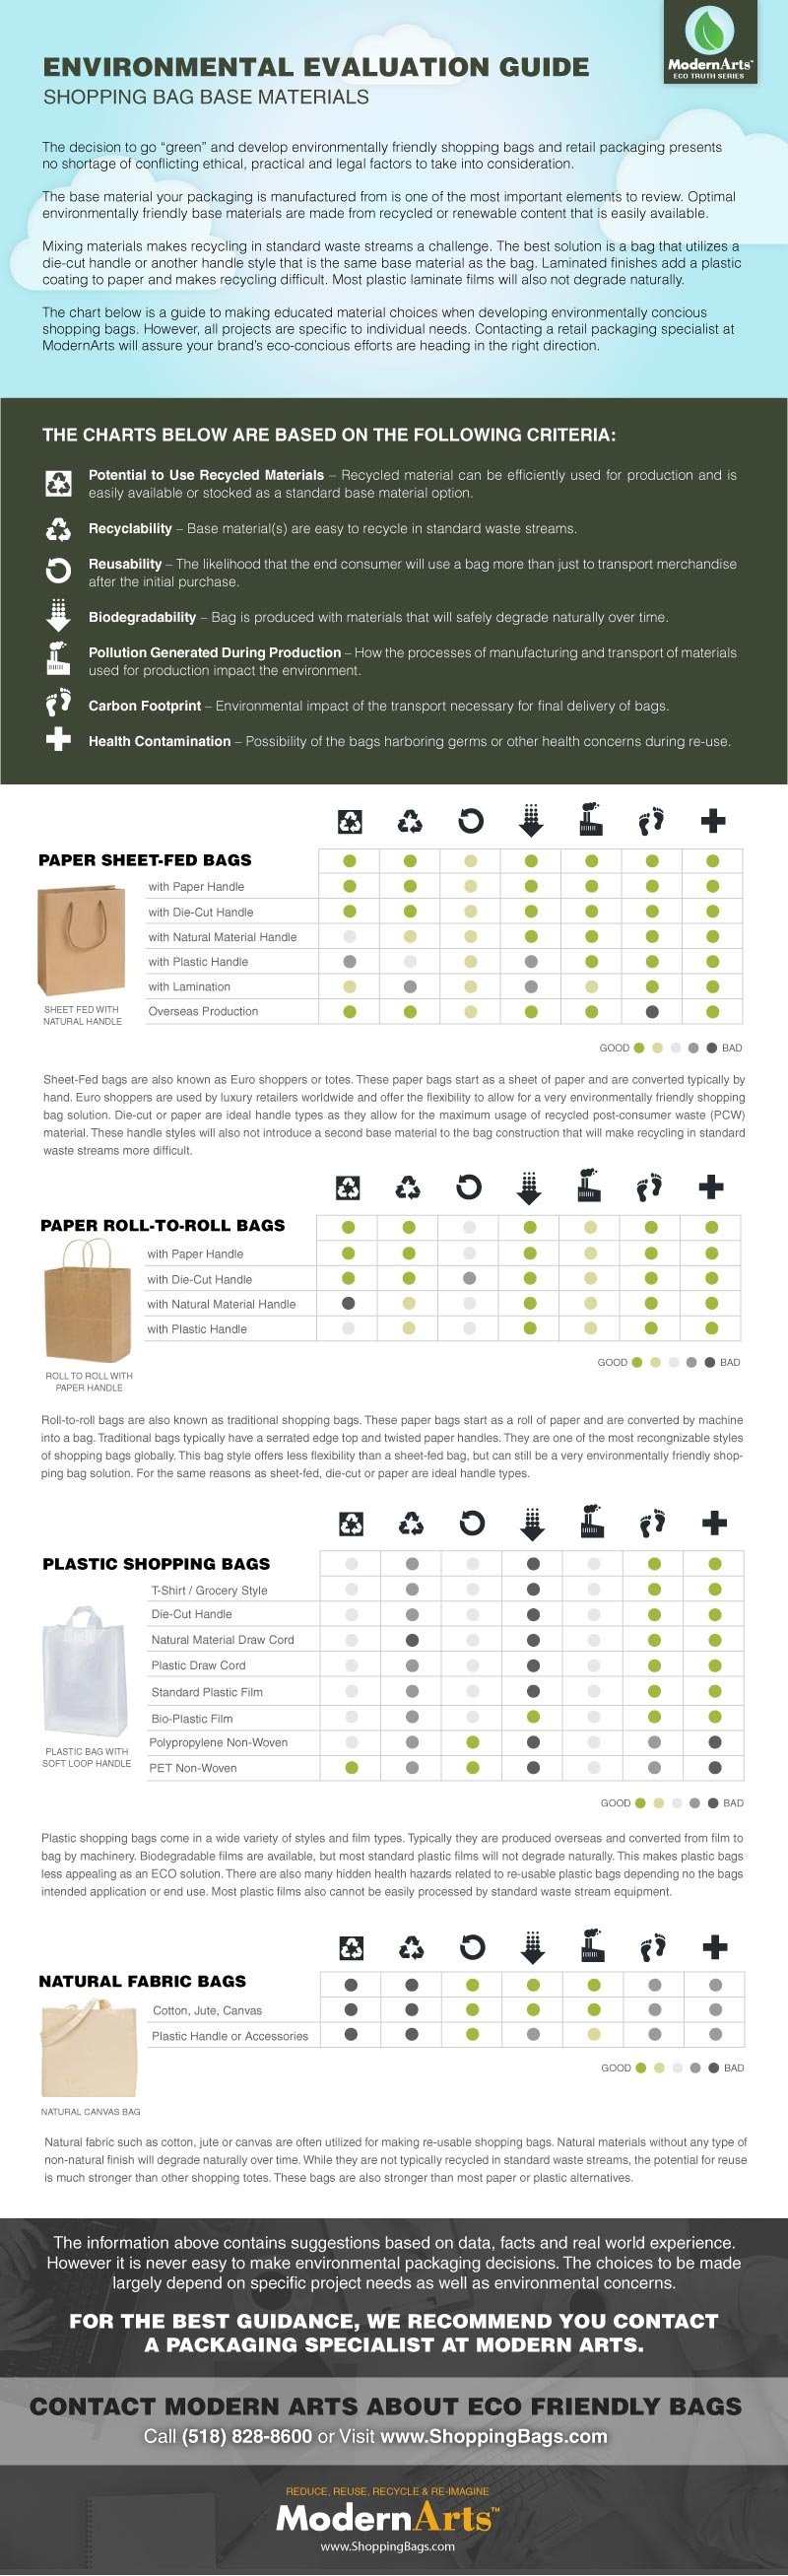 shopping bag and retail packaging base material eco friendly guide